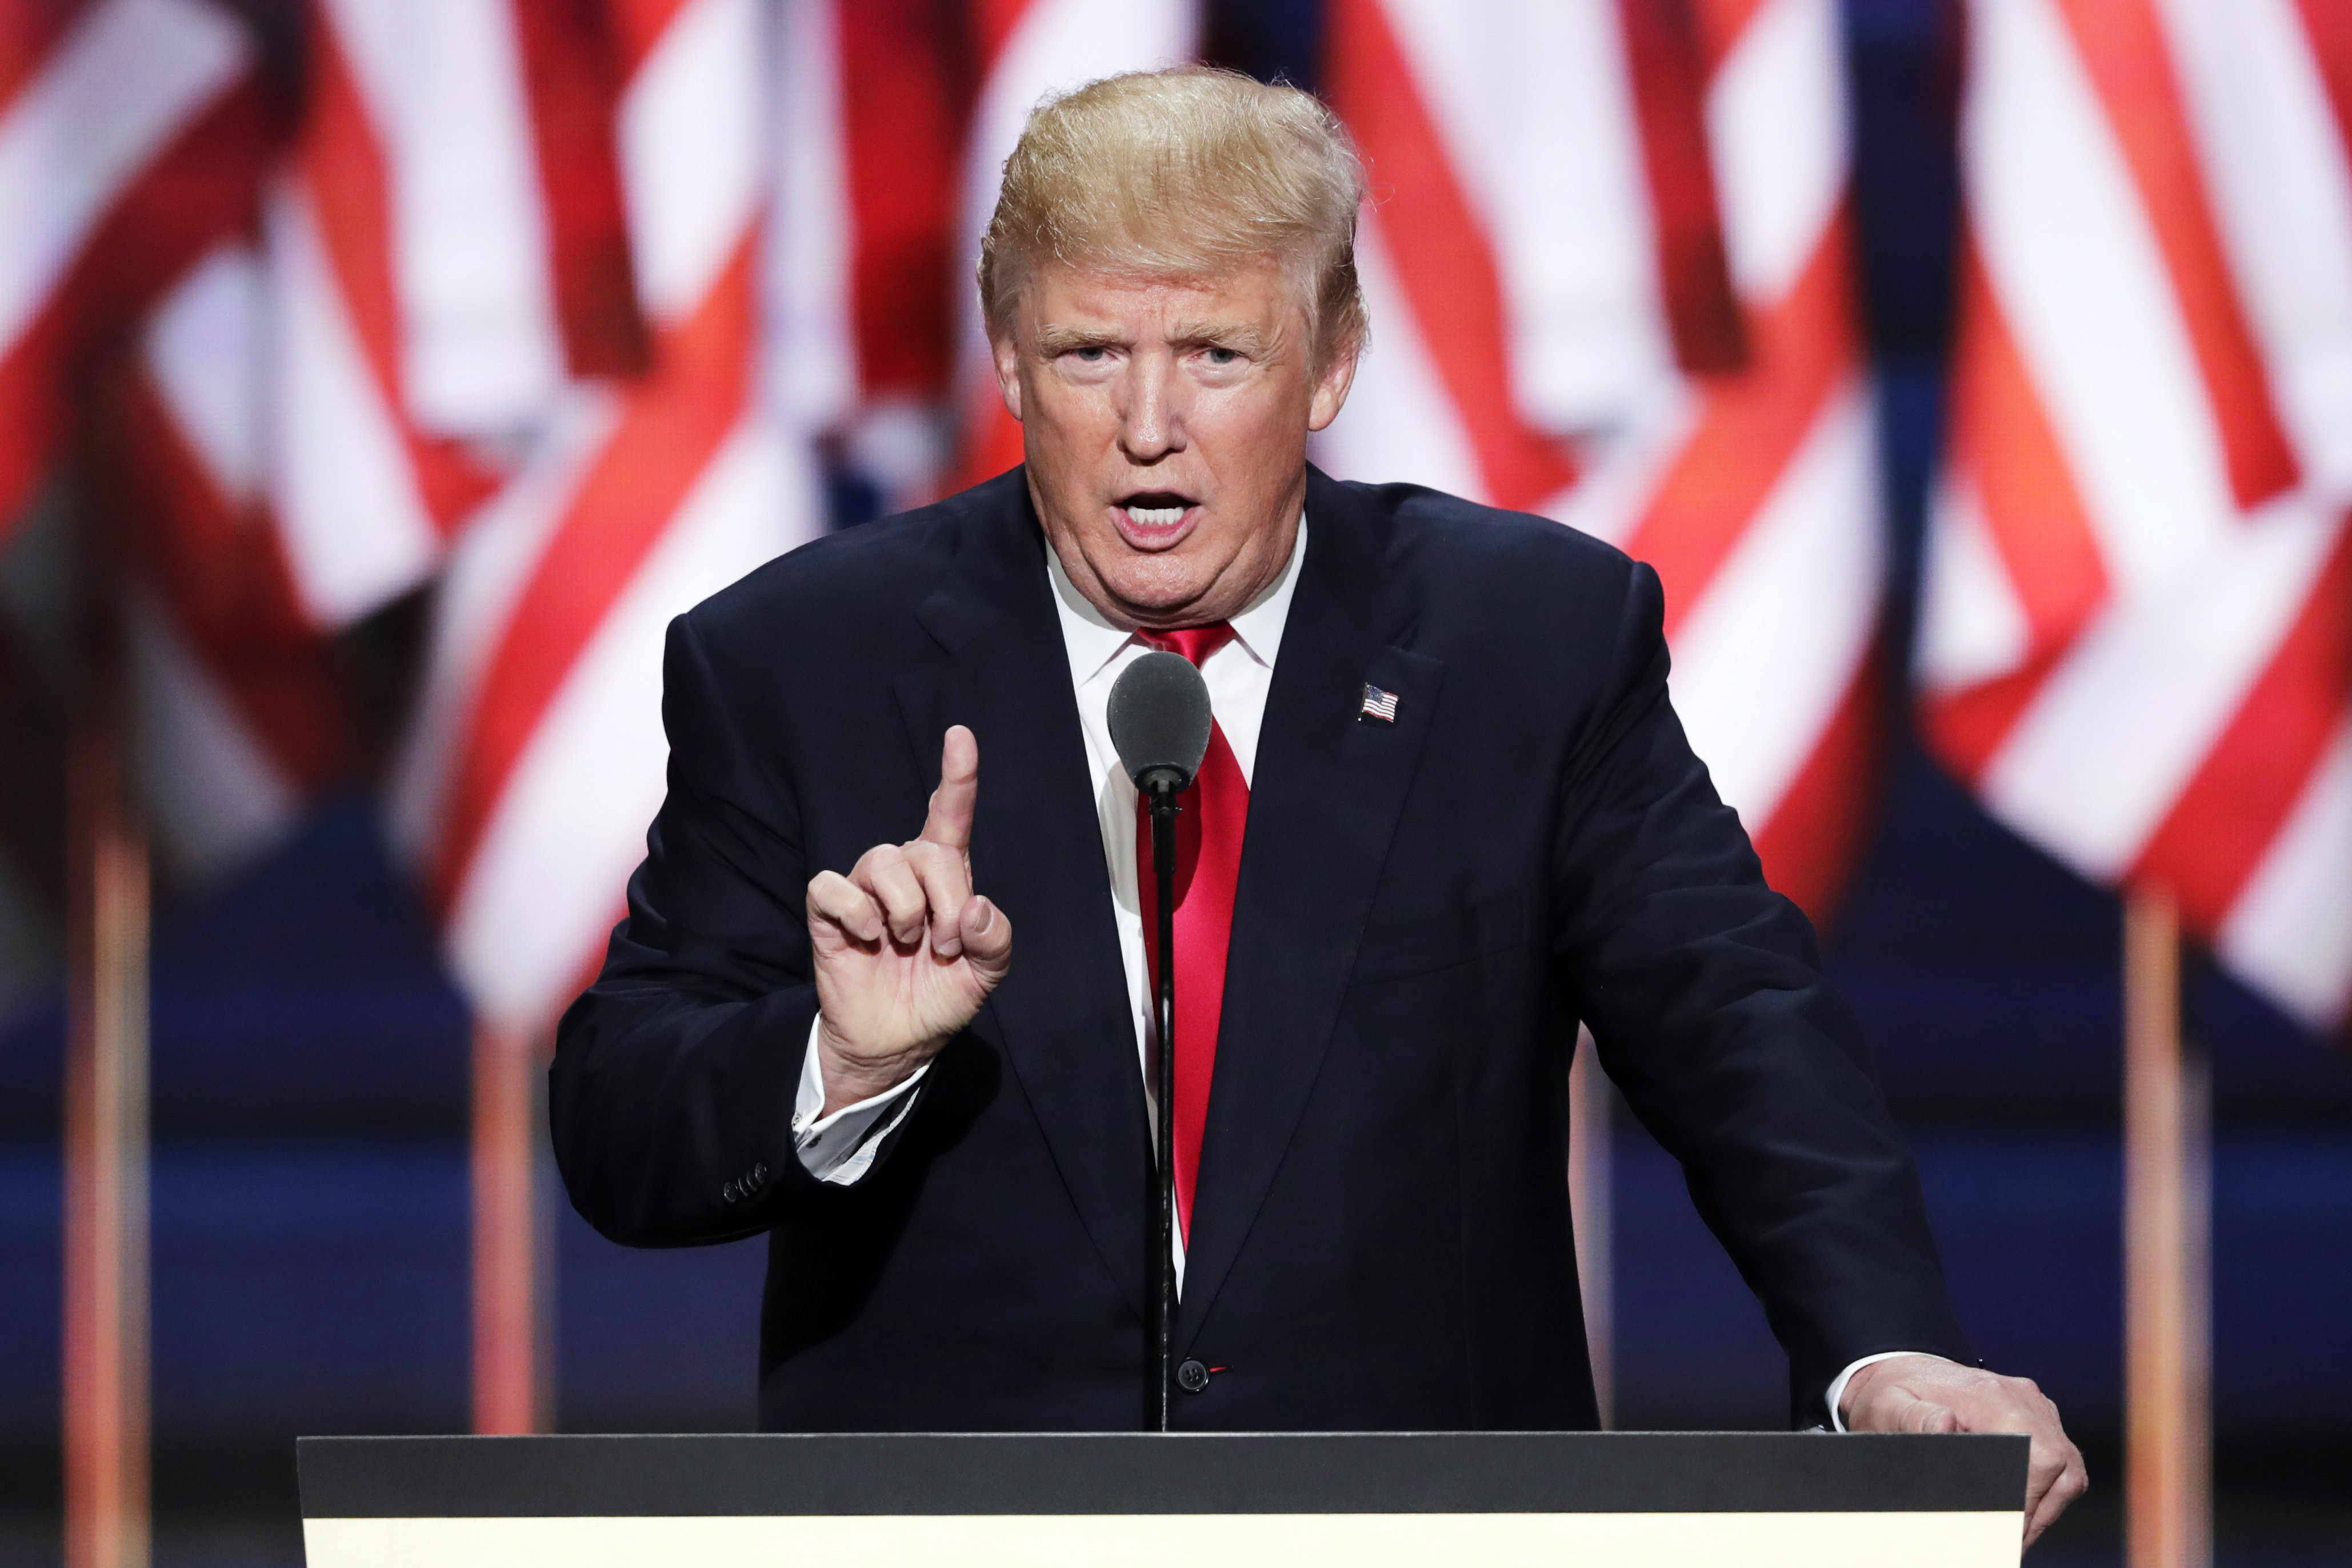 Republican presidential candidate Donald Trump speaks during the final day of the Republican National Convention in Cleveland, Thursday, July 21, 2016.